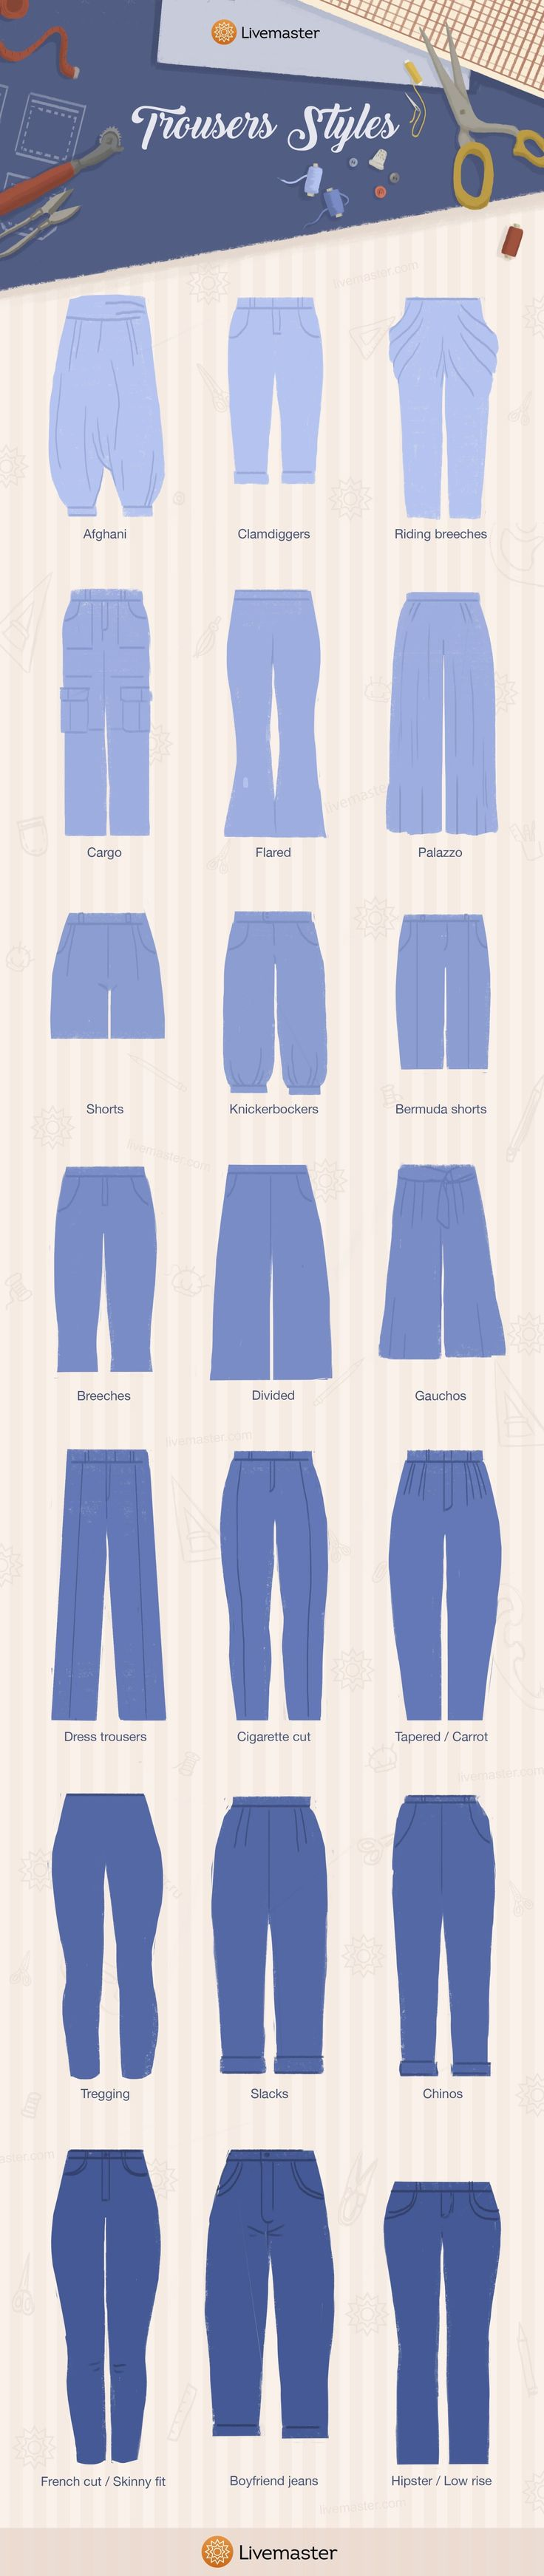 Trousers Styles Guide from Livemaster - Livemaster - original item, handmade